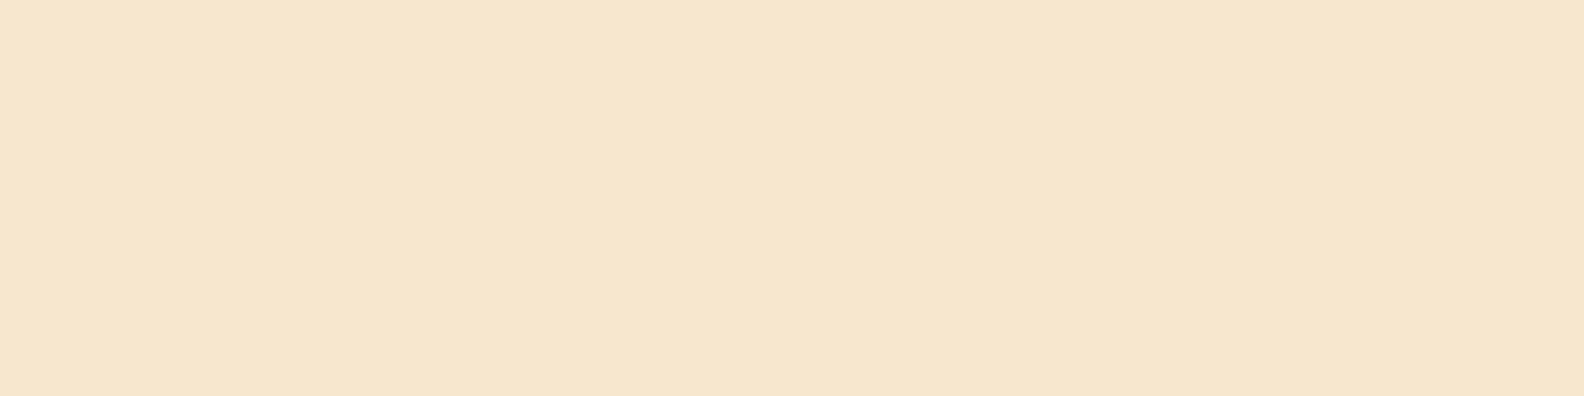 1584x396 Champagne Solid Color Background